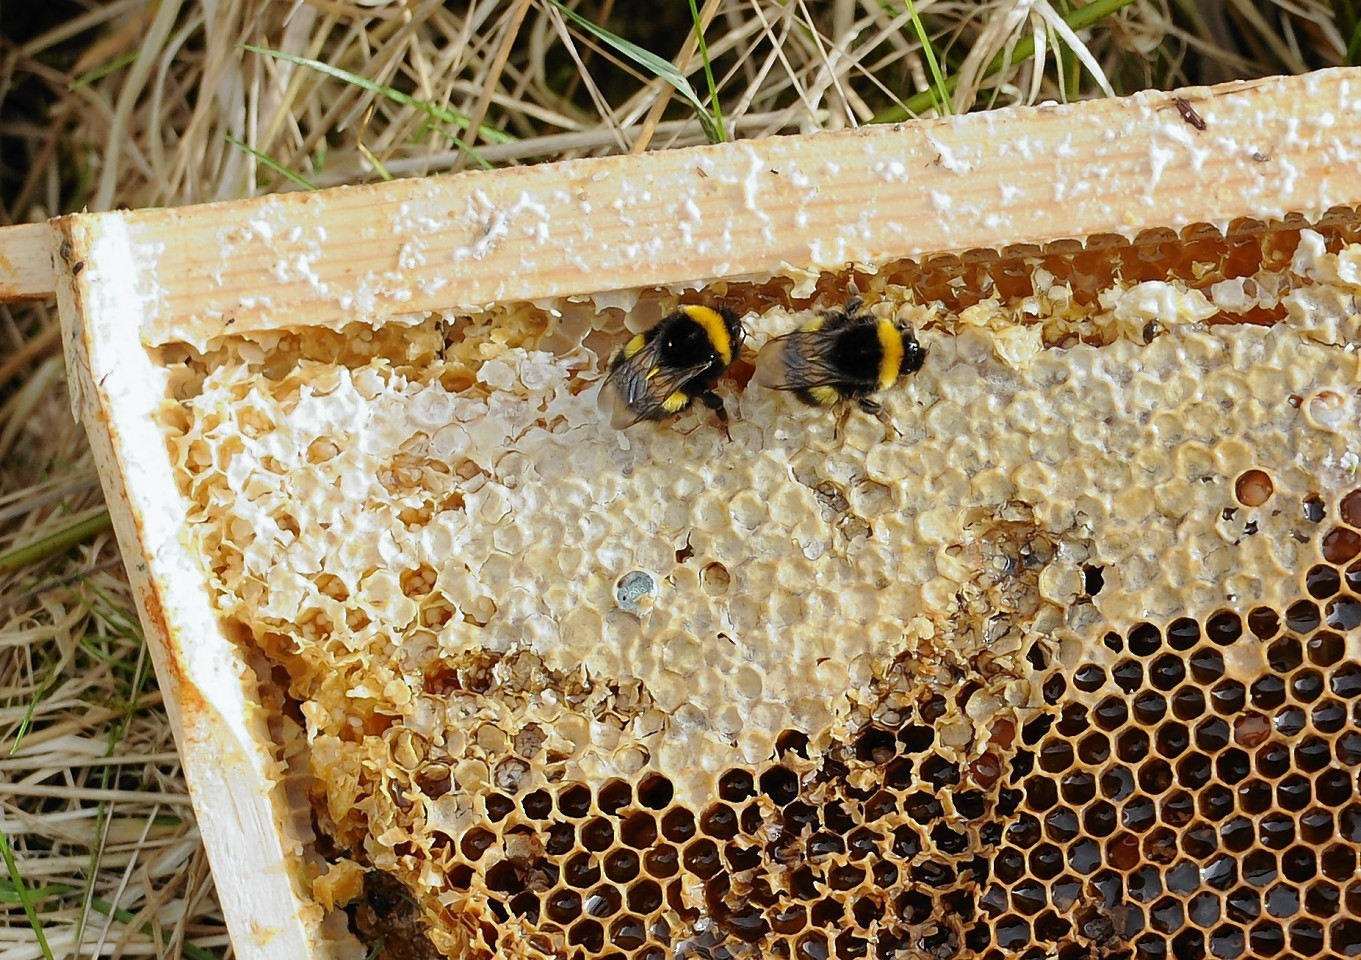 The study found agriculture had a positive impact on honey bee health